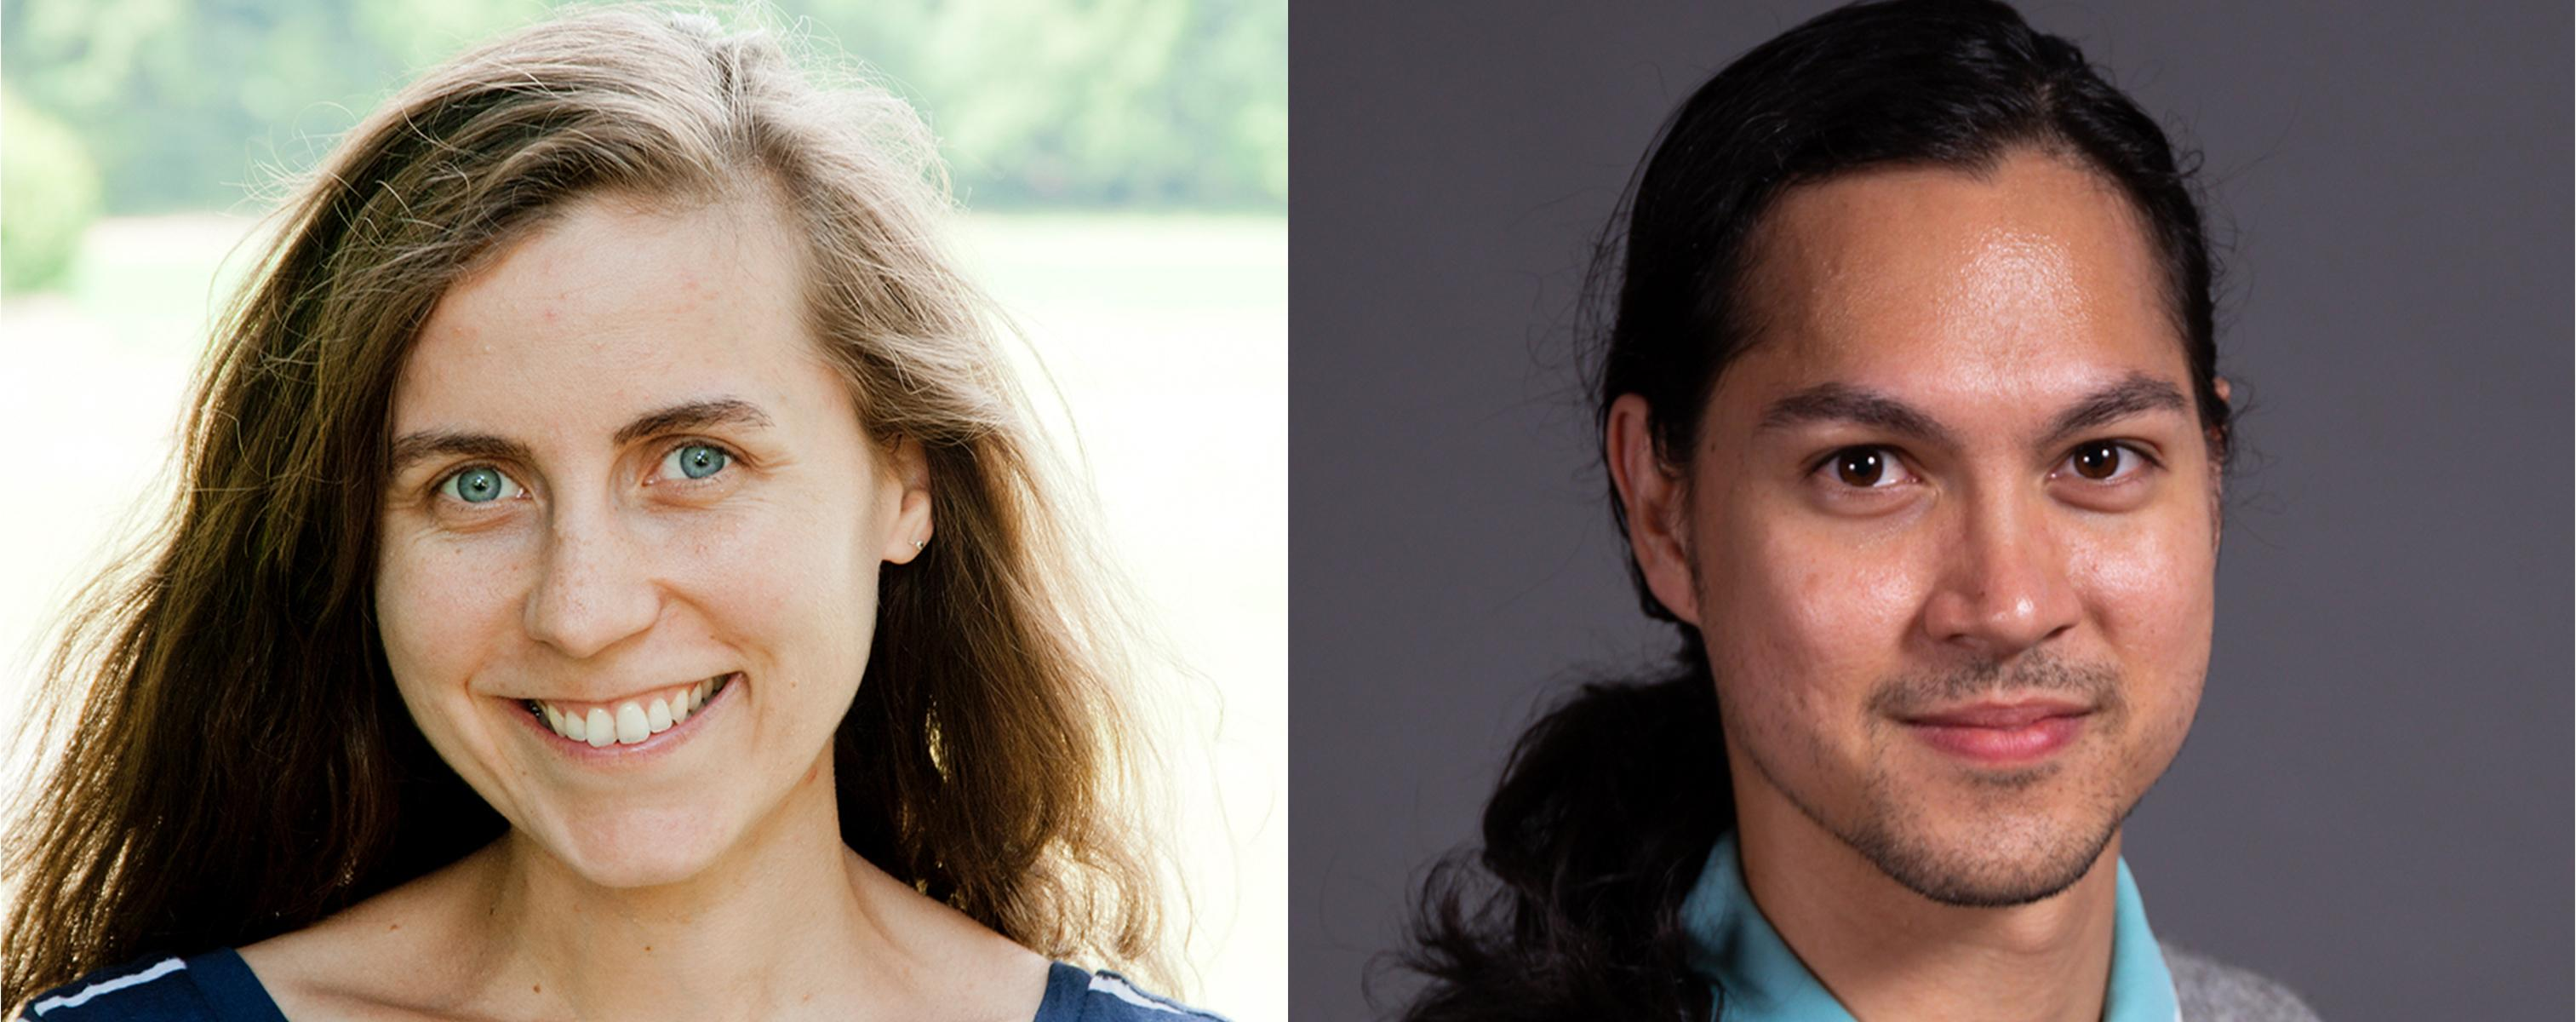 Barbara Dietlinger and Andrew White headshots